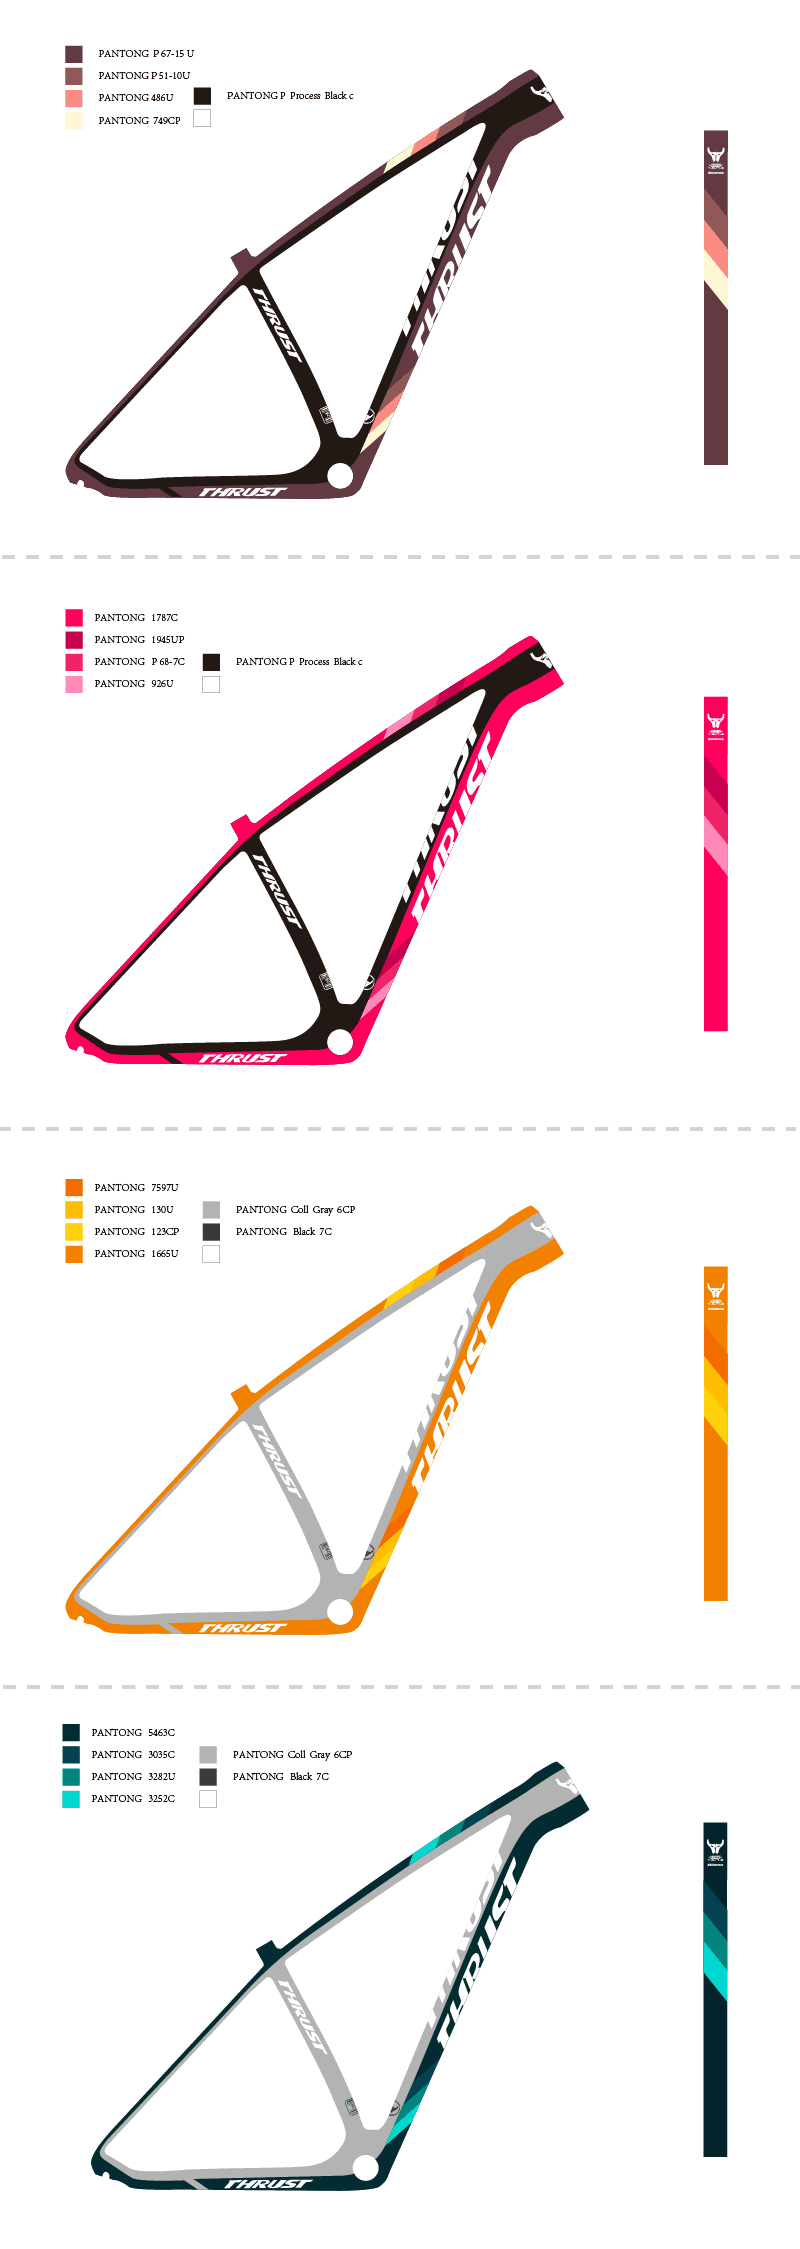 Carbon bicycle frame New design for Female racer 27.5er and 29er 15/17/19 size available